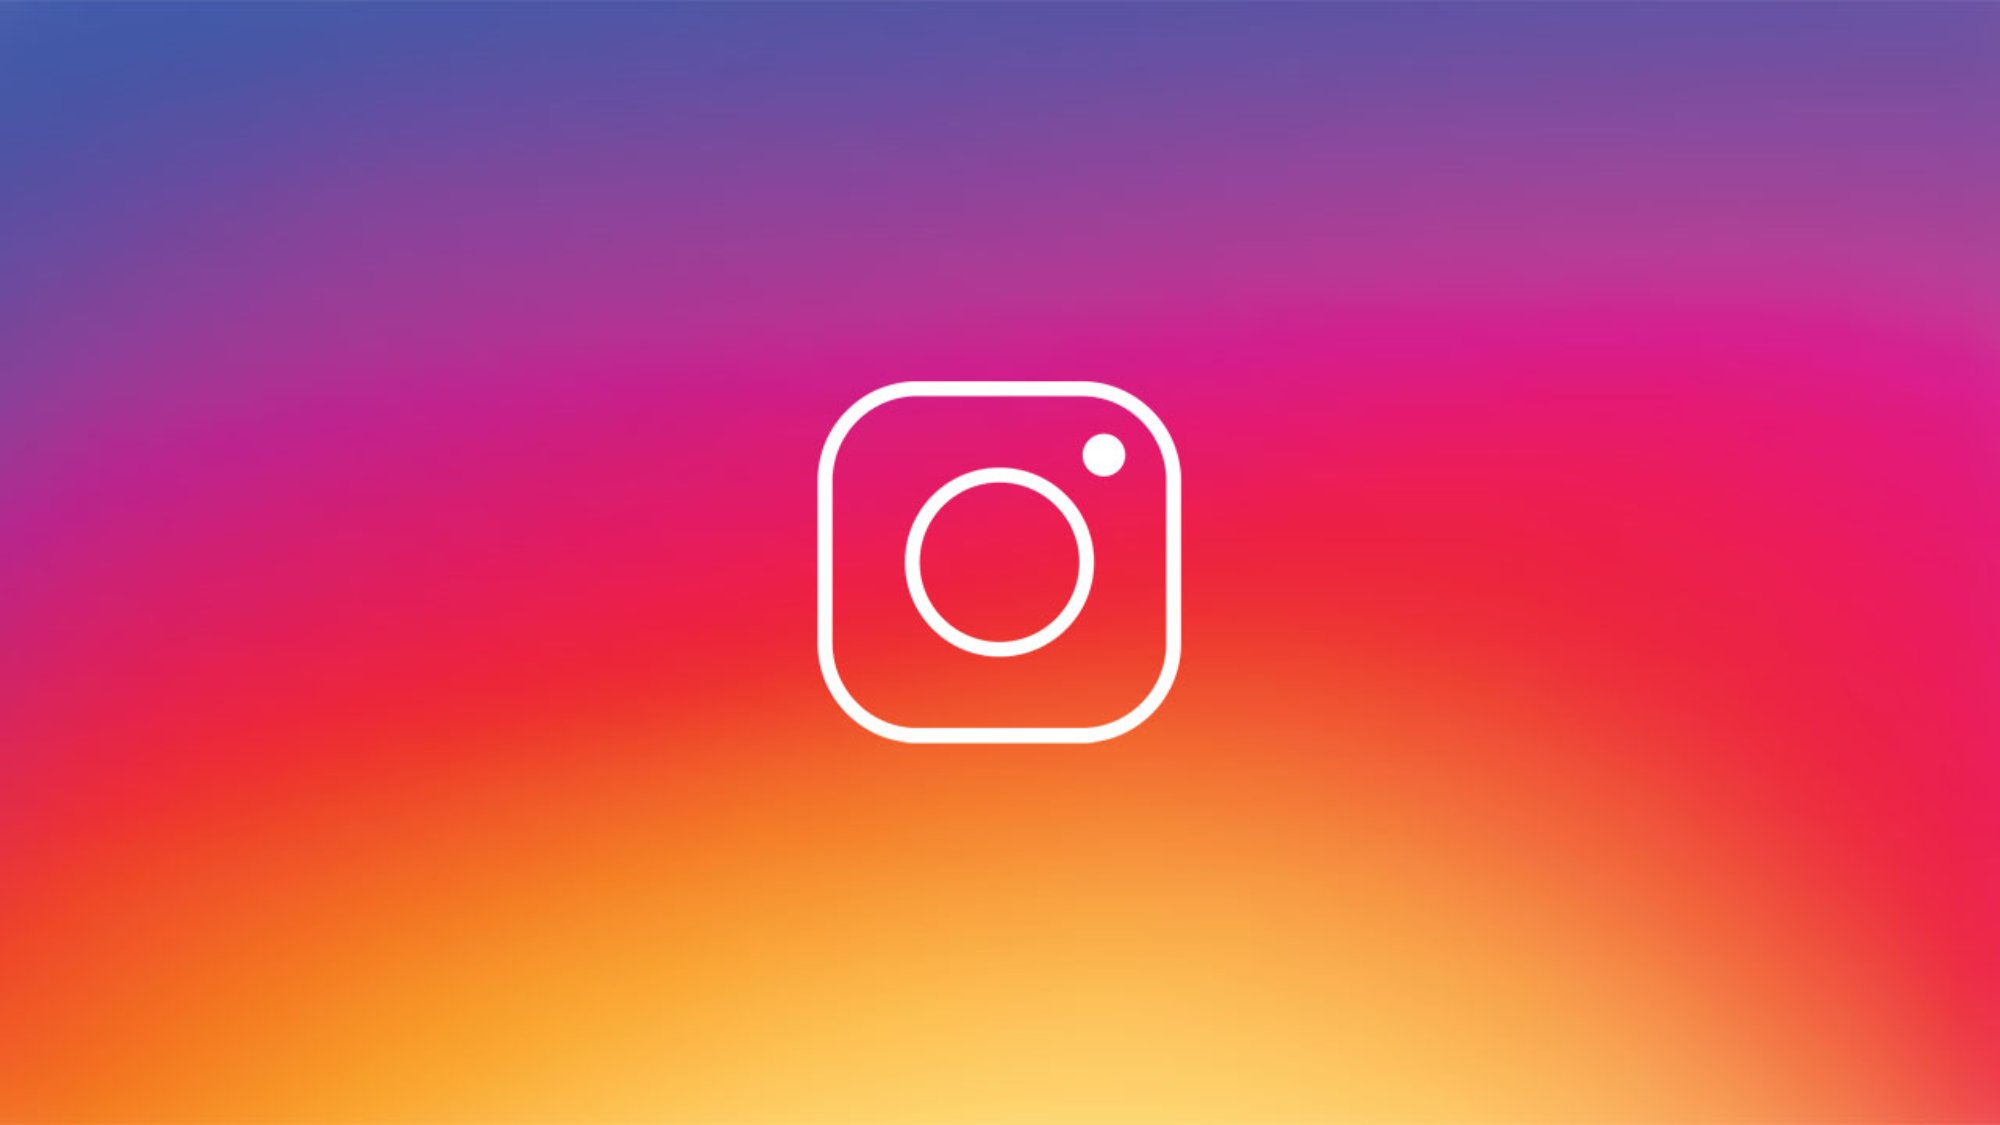 How to appear offline in Instagram